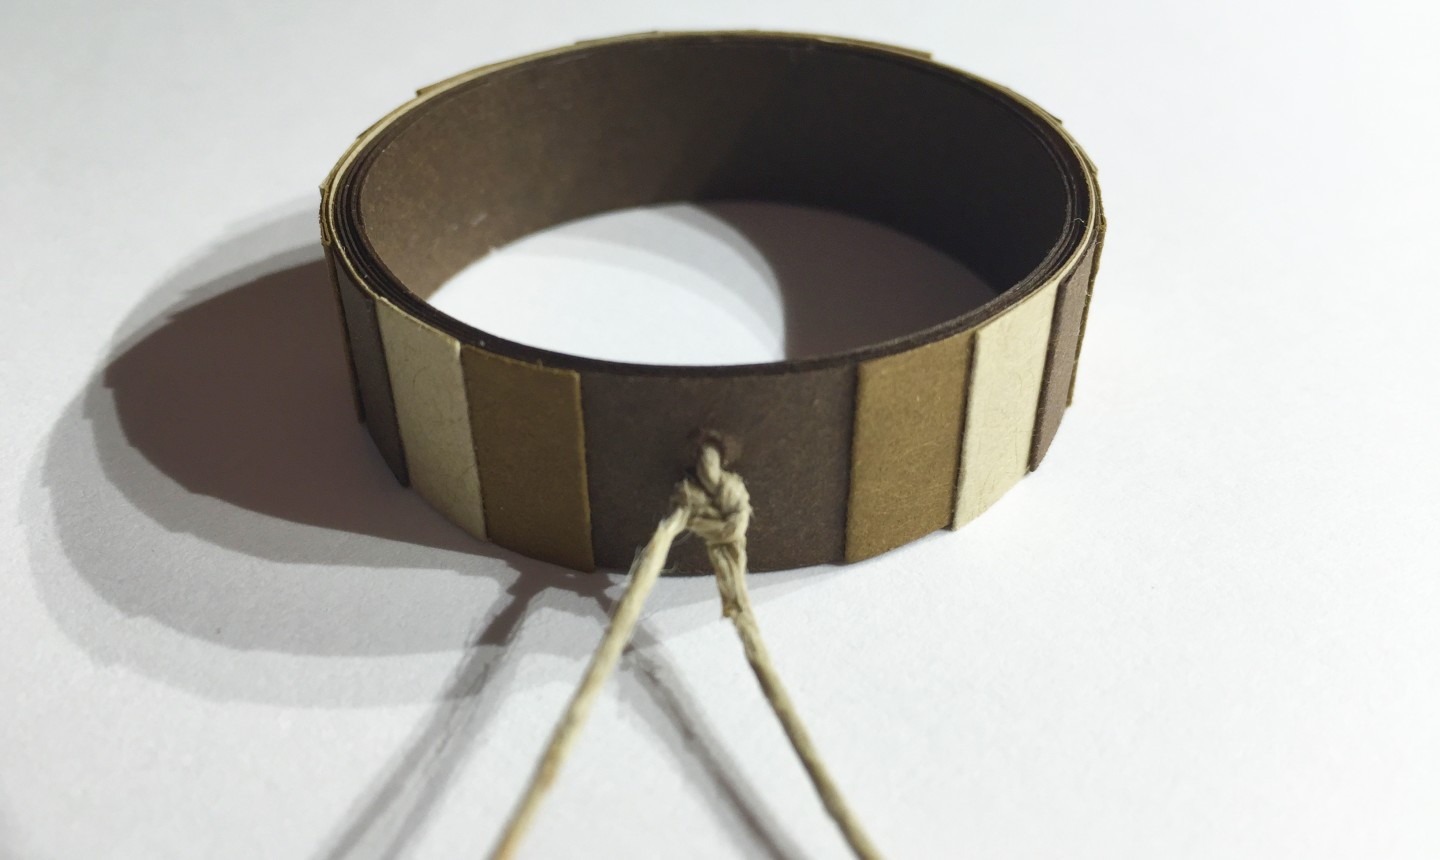 Twine attached to paper ring